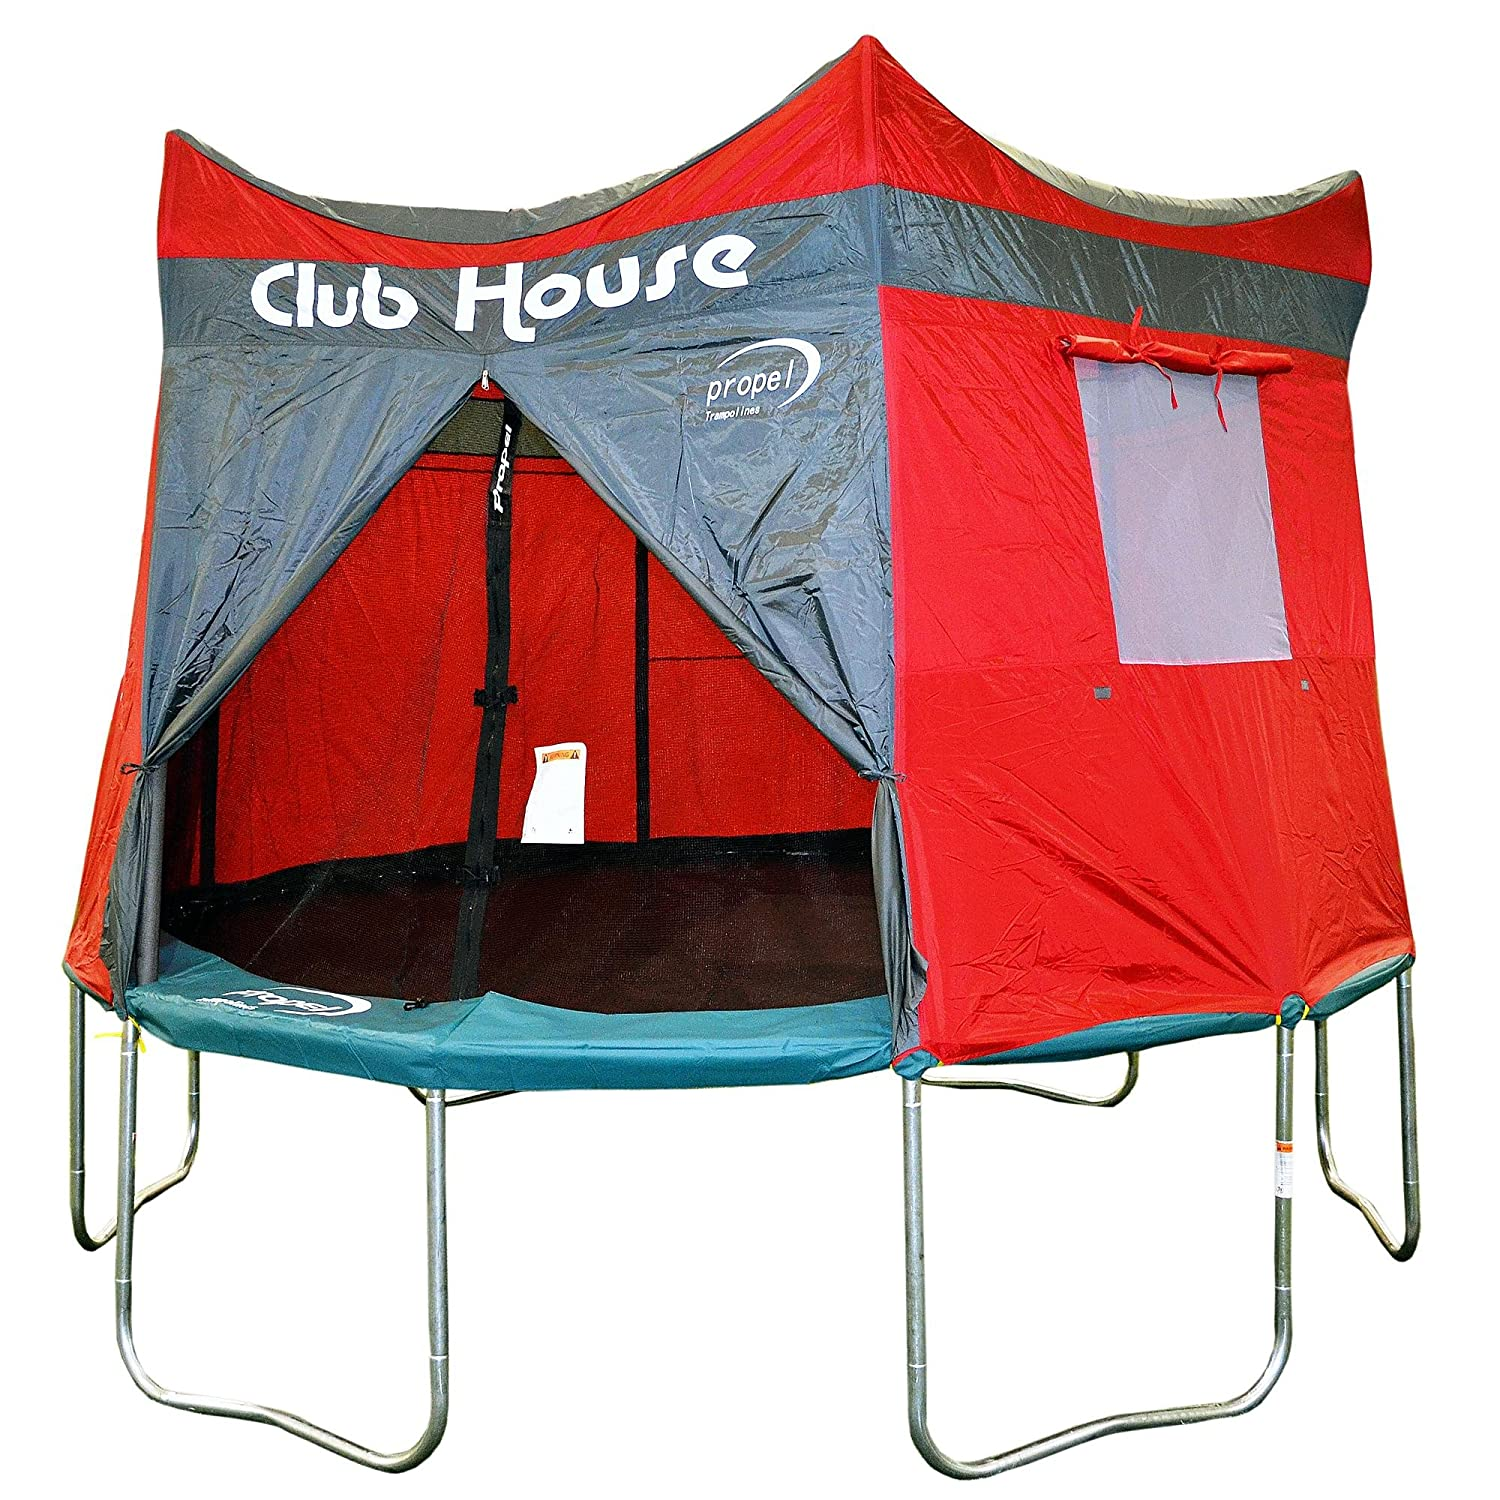 Amazon.com Clubhouse Tent Accessory Kit for Propel 12u0027 Tr&oline with 6 pole enclosure - TENT ONLY Toys u0026 Games  sc 1 st  Amazon.com & Amazon.com: Clubhouse Tent Accessory Kit for Propel 12u0027 Trampoline ...